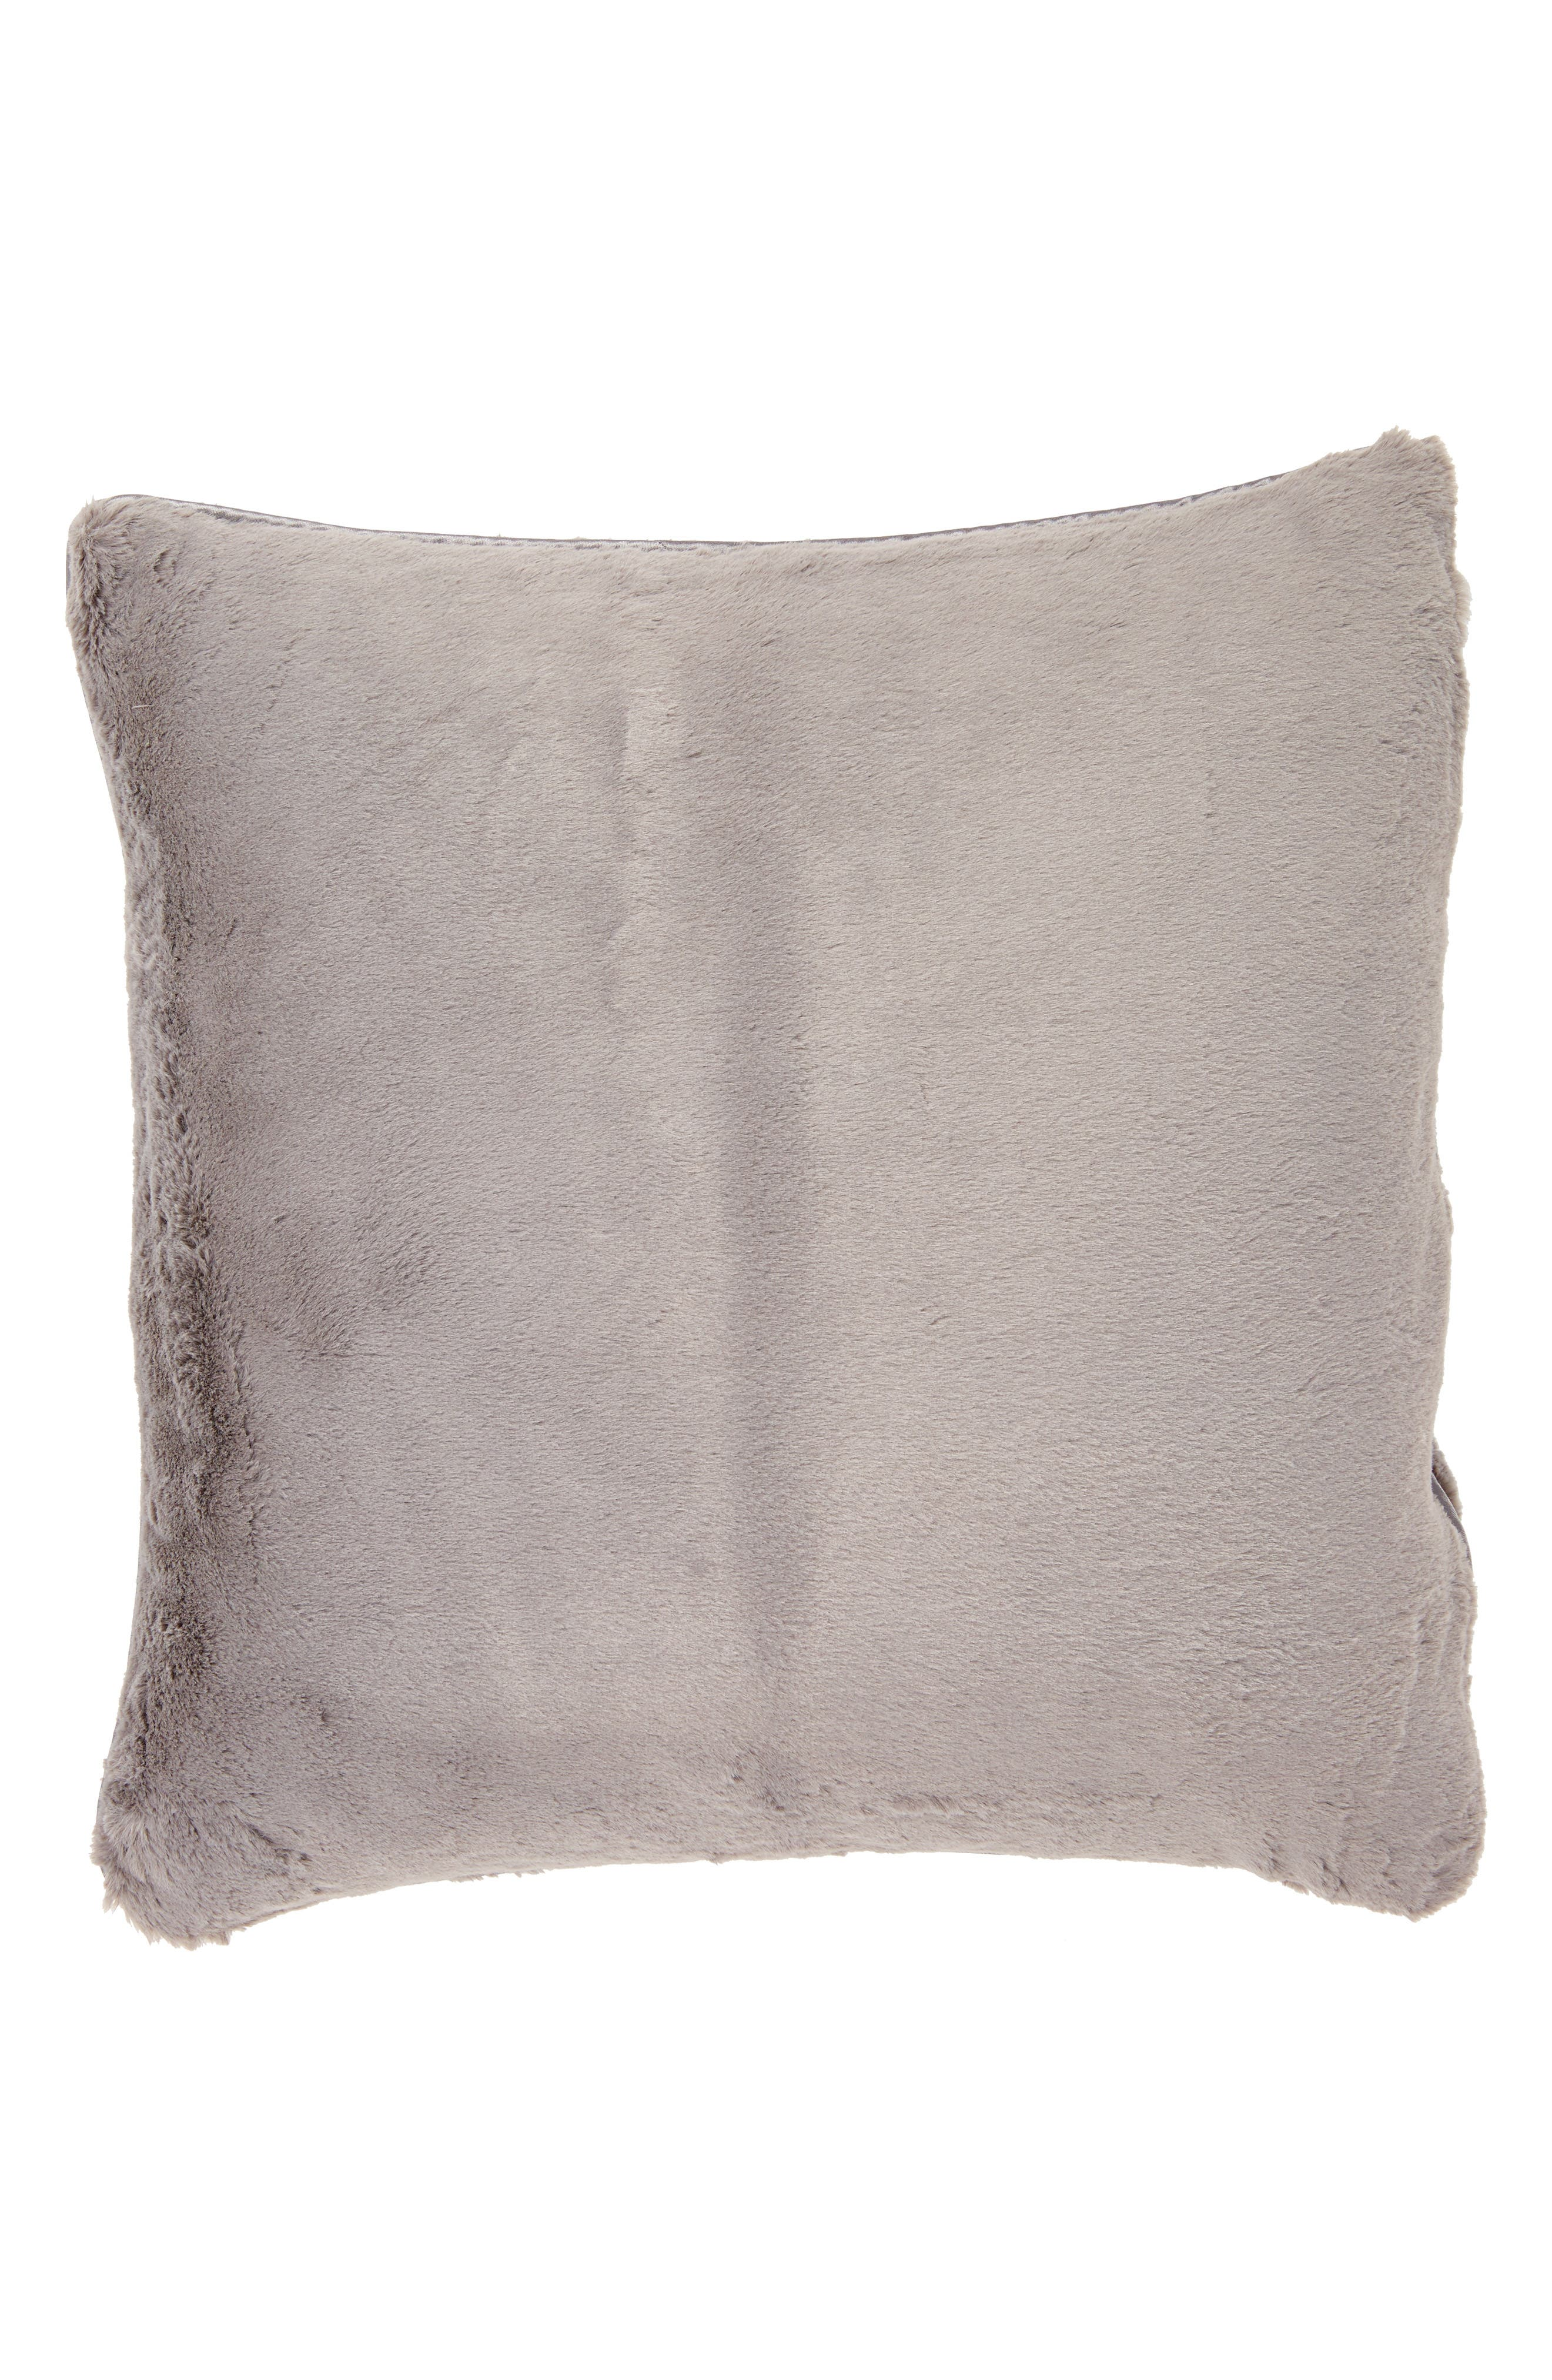 GIRAFFE AT HOME, 'Luxe' Throw Pillow, Alternate thumbnail 2, color, CHARCOAL